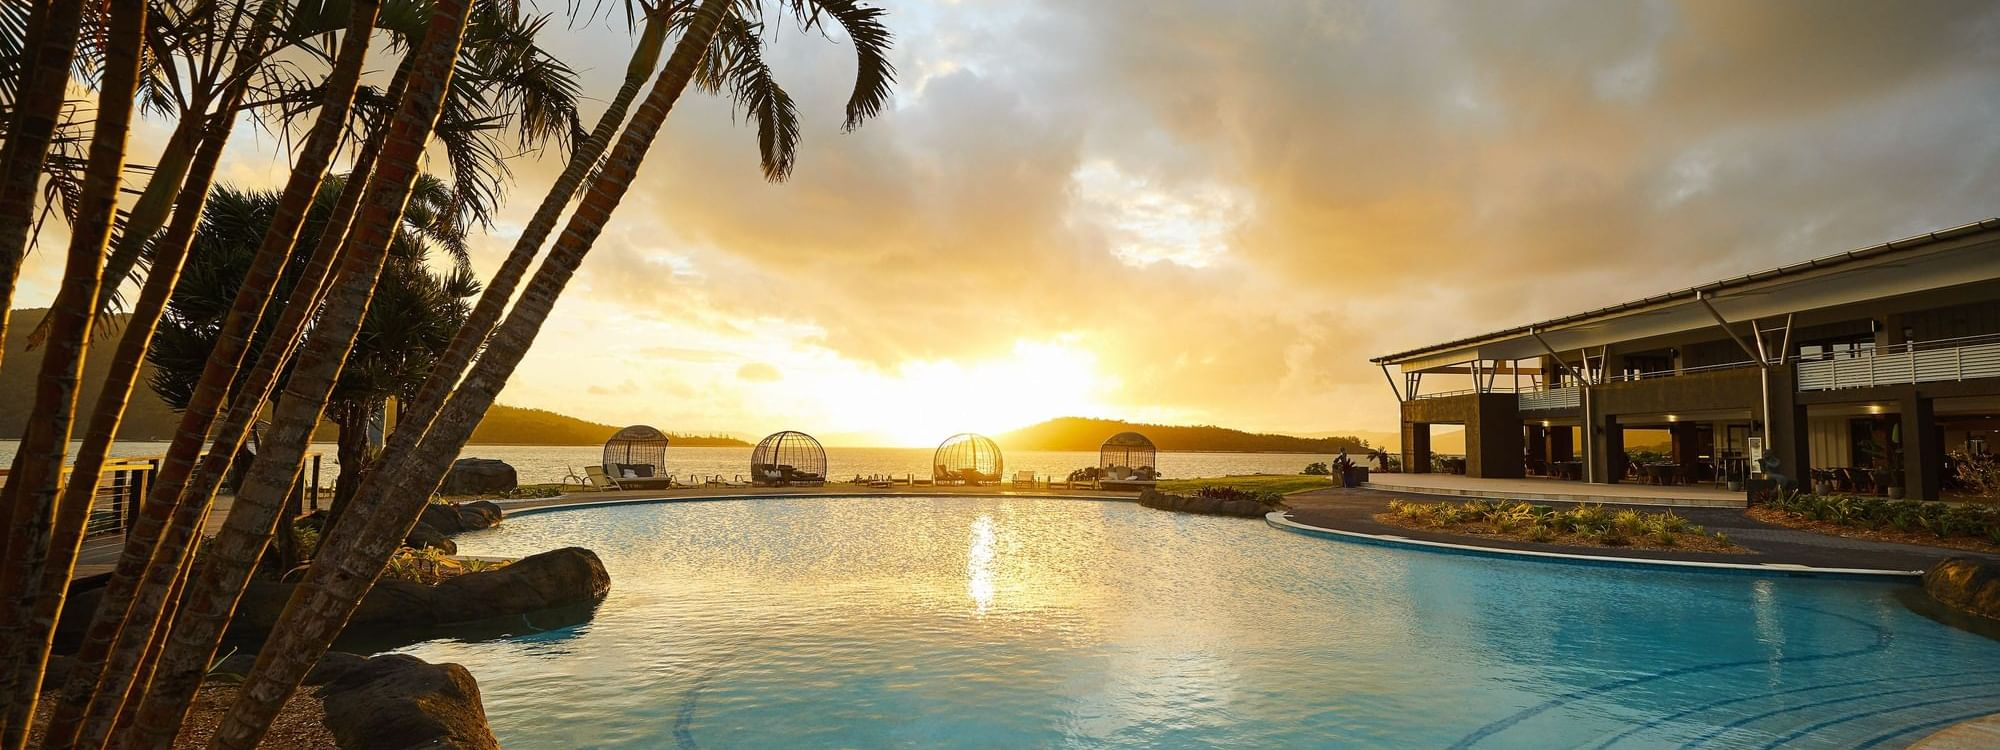 Swimming Pool and palm tree at sunset at Daydream Island Resort